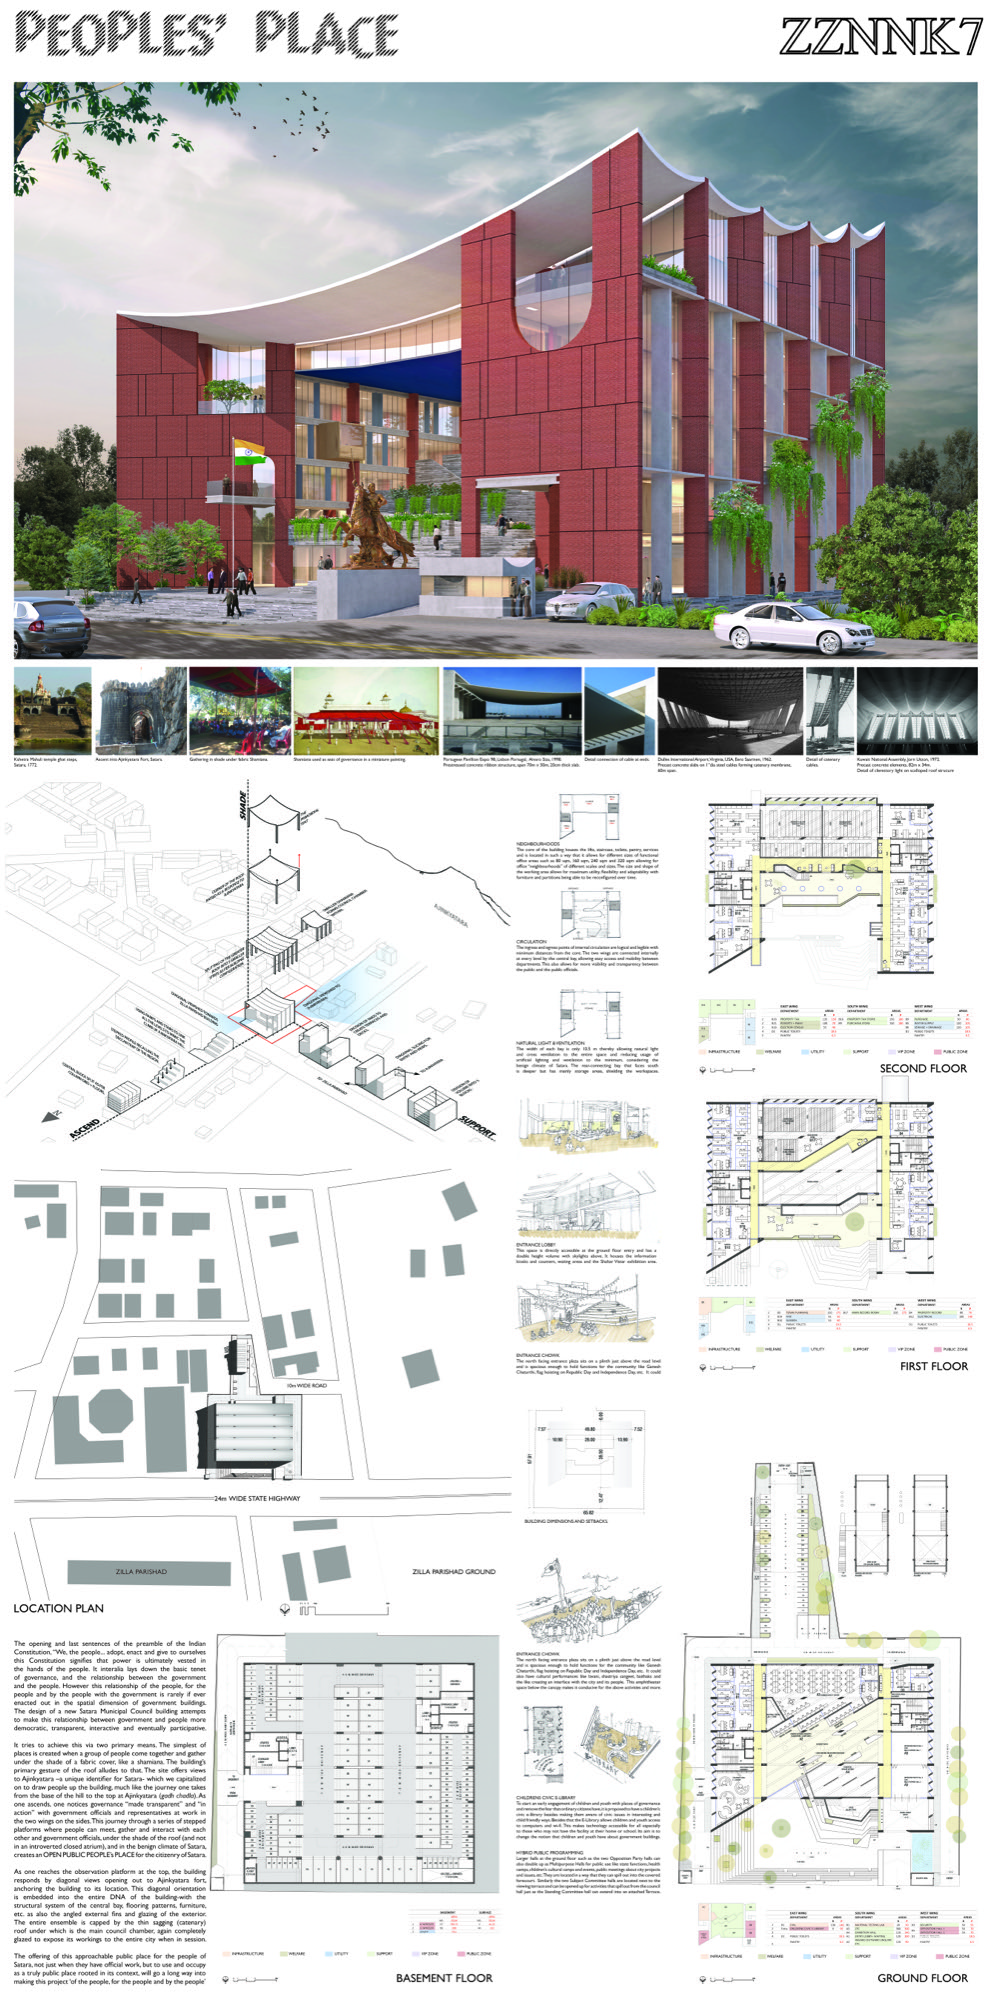 For People: Municipal Building for Satara, competition entry by S+Ps - Pinkish Shah and Shilpa Gore 13